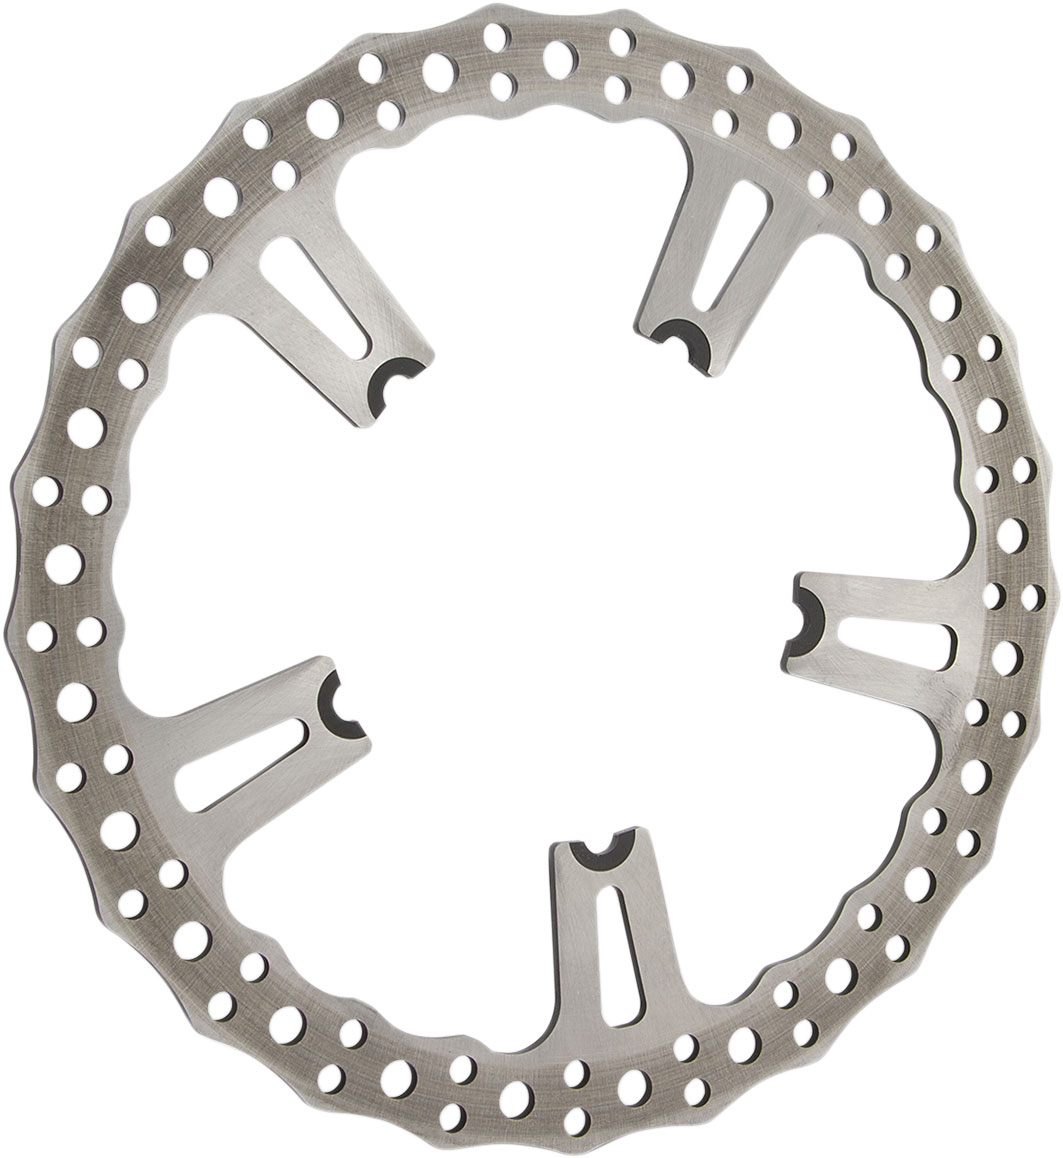 Arlen Ness - 02-991 - 15in. Big Brake Floating Rotor Kit, Wave